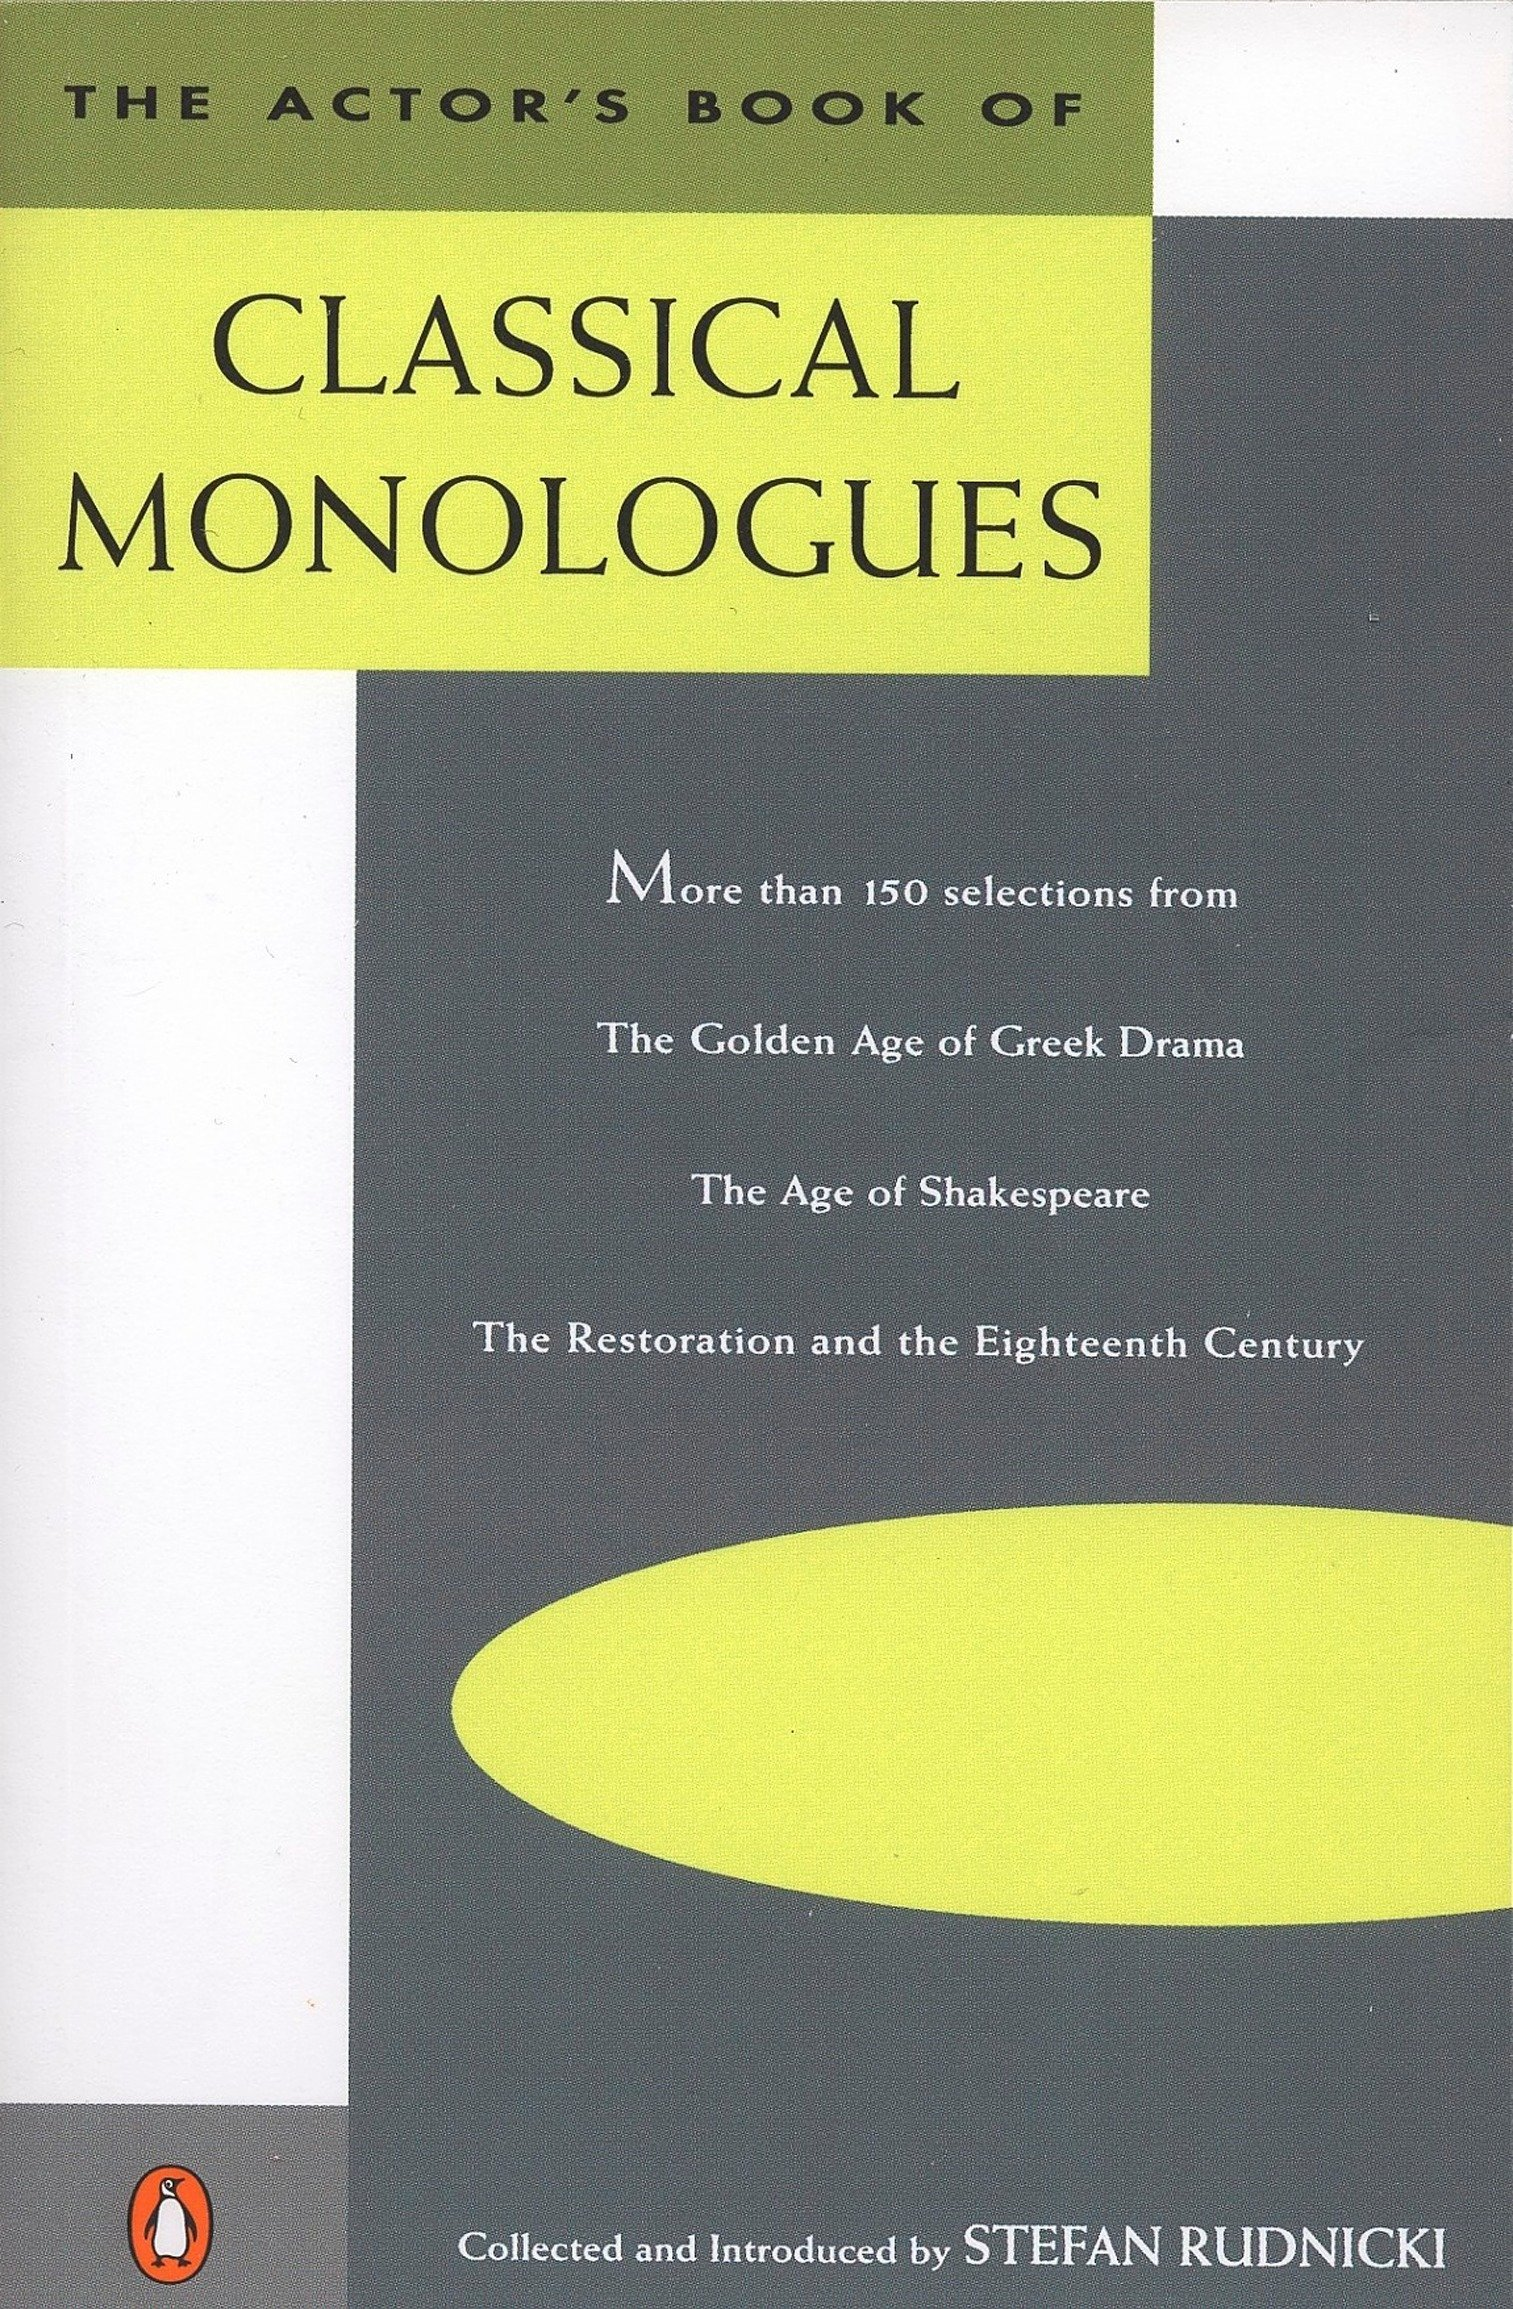 The Actors book of classical monologues